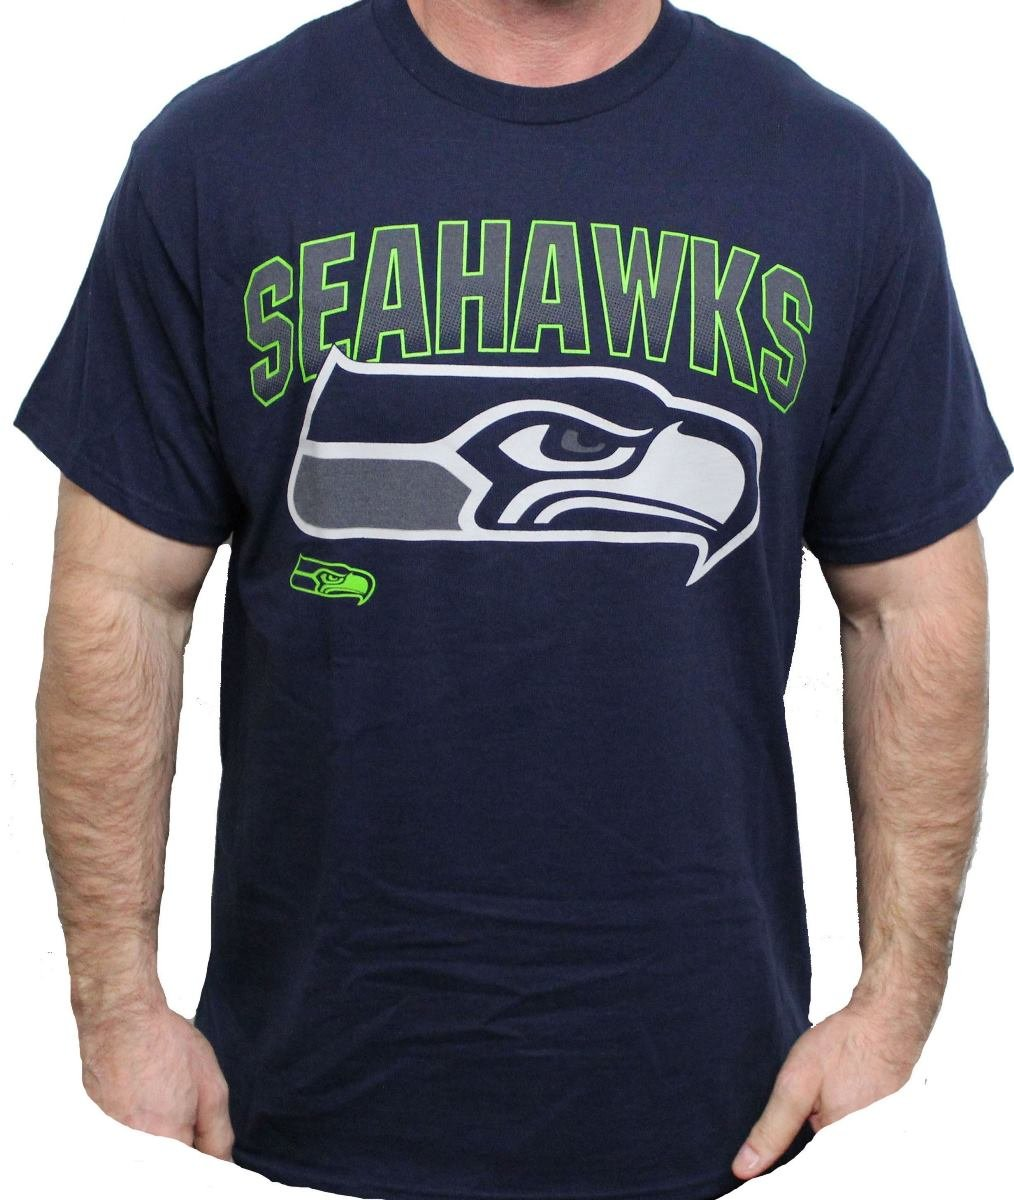 Seattle Seahawks Majestic NFL 2015 Reflective Short Sleeve Men's Navy T-Shirt